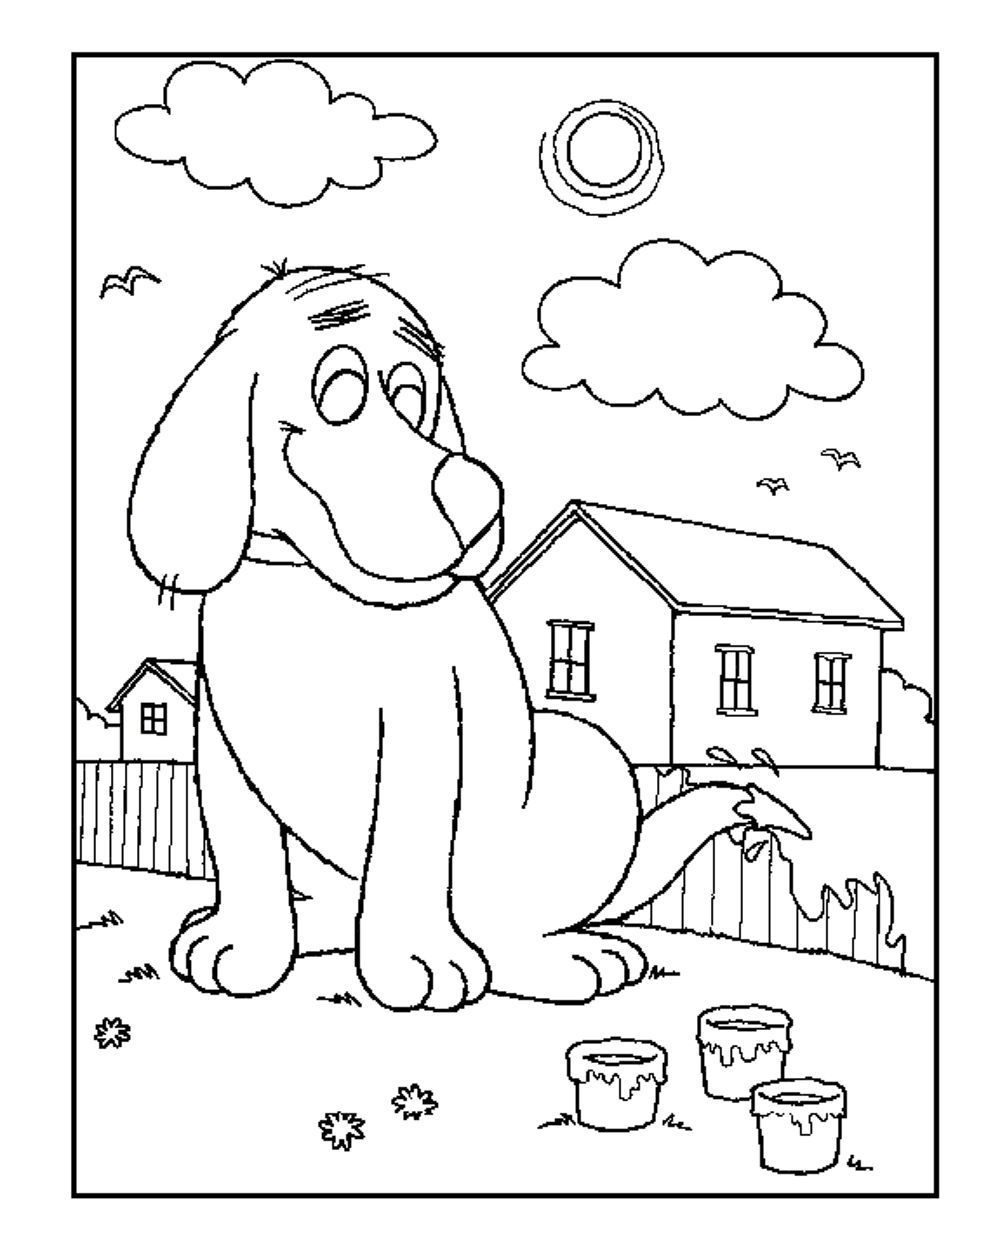 biscuit the dog coloring pages dog coloring page biscuit the dog coloring pages printable the dog pages coloring biscuit